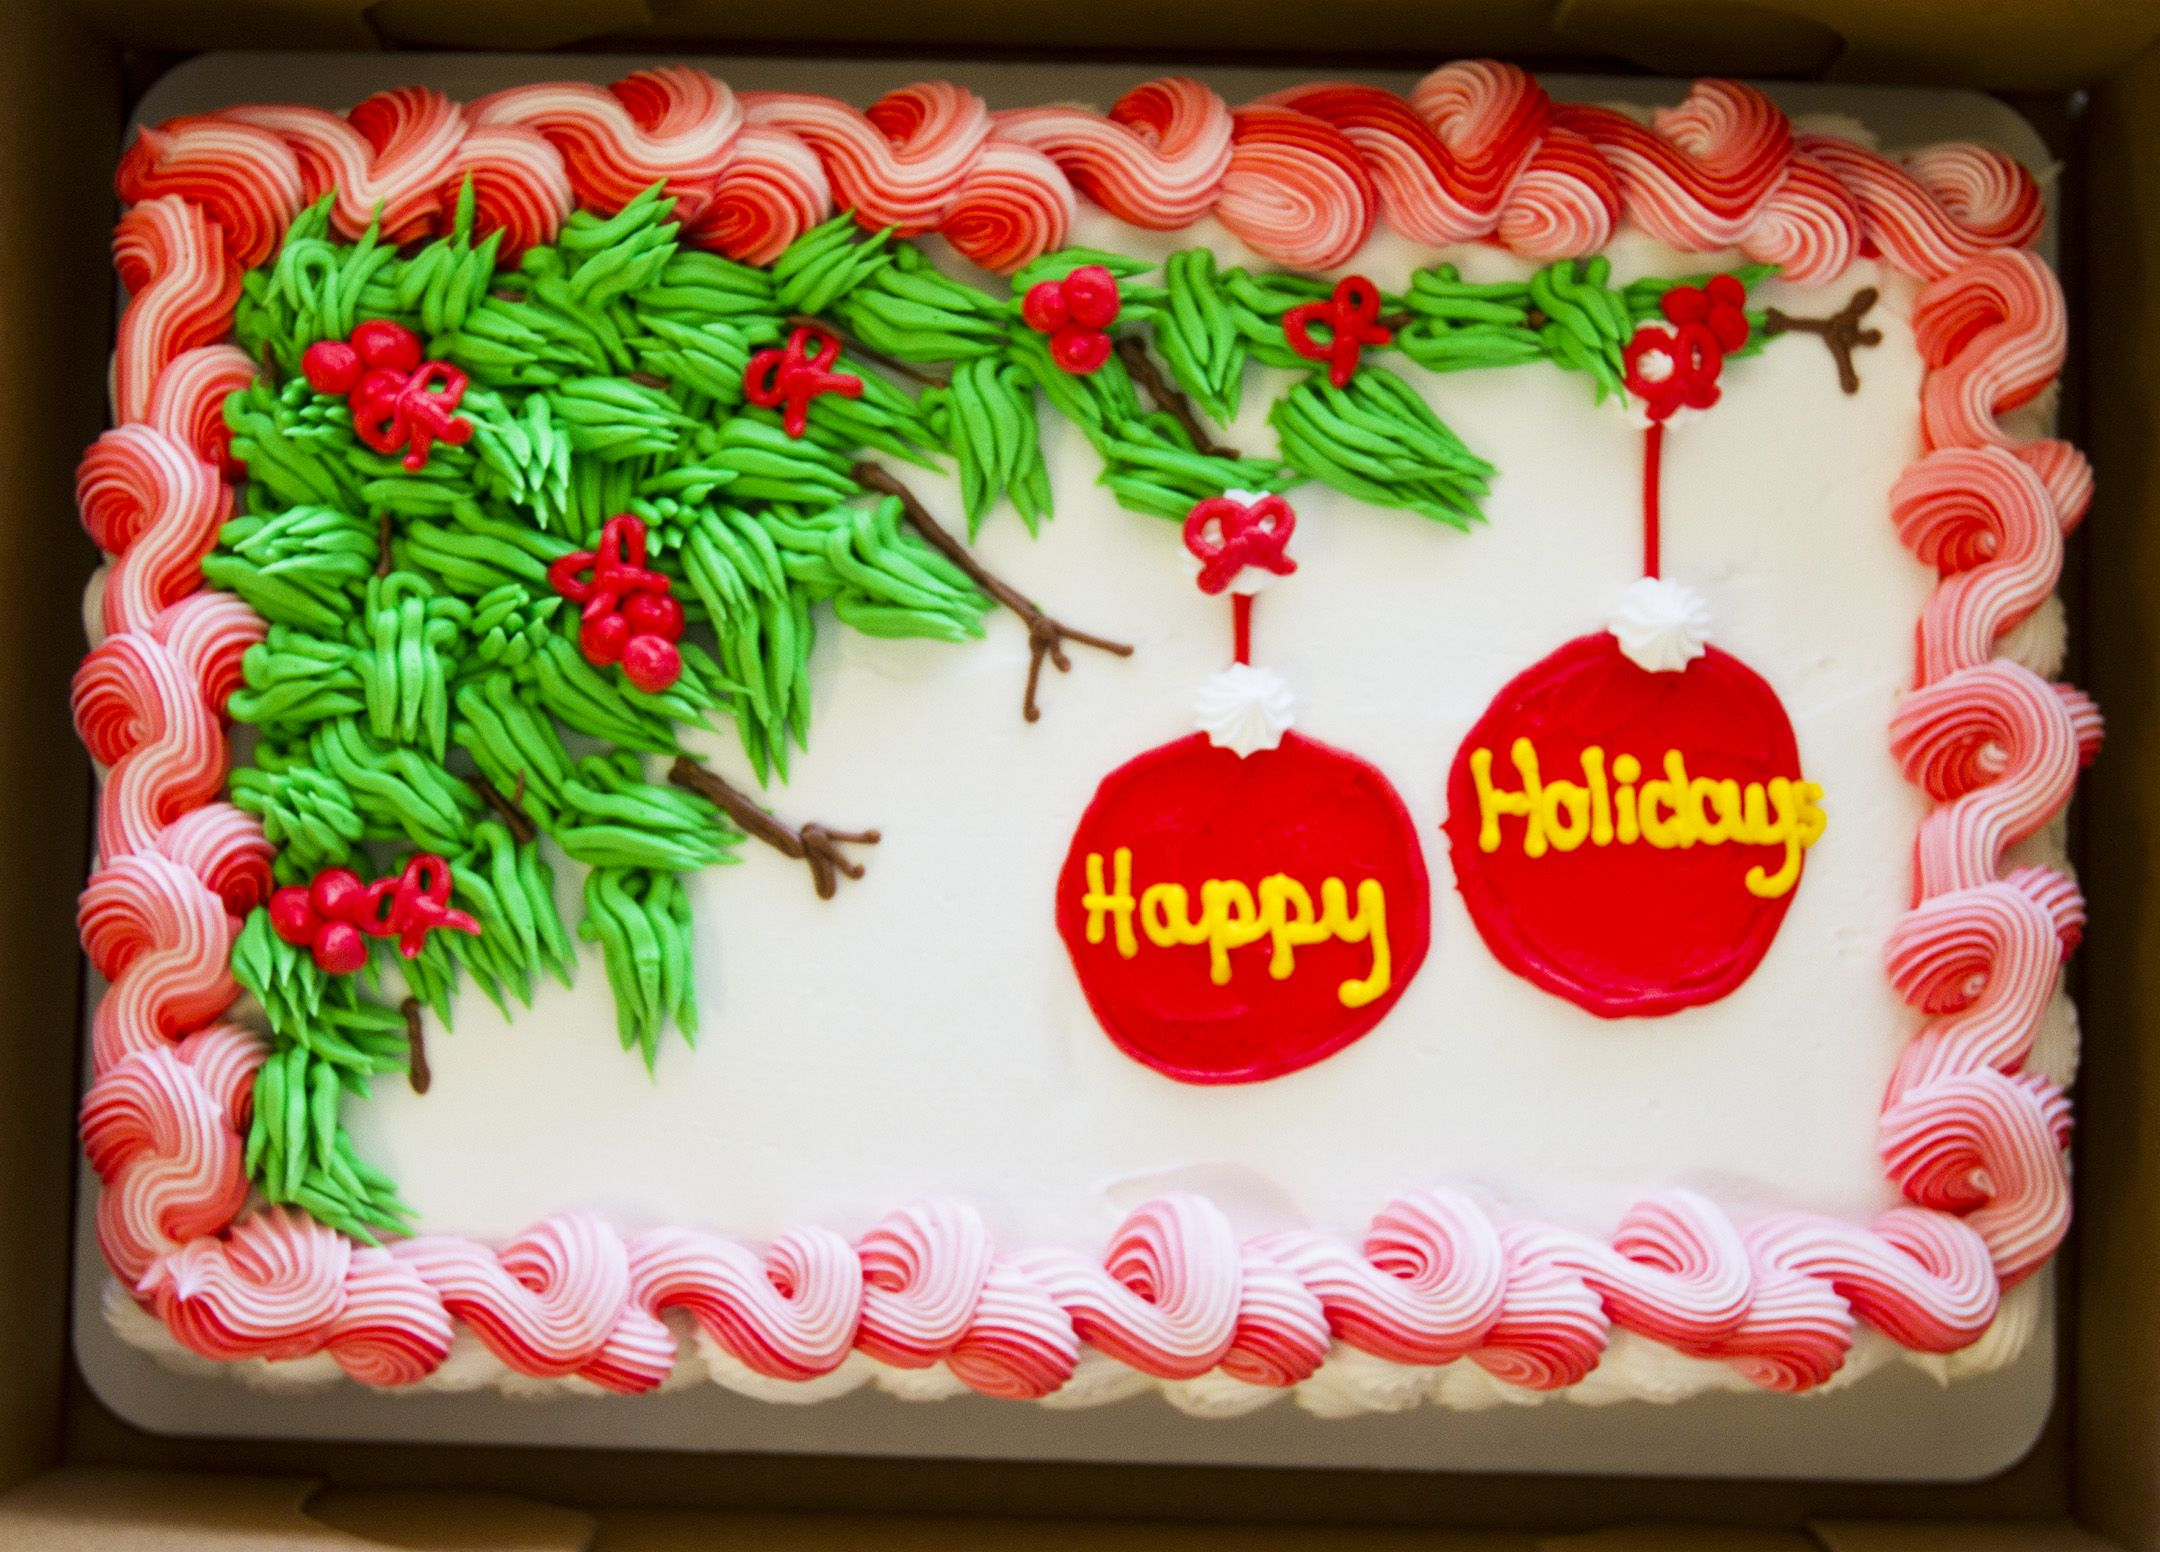 Christmas Sheet Cake Decorating Ideas : A Dewey s holiday sheet cake! Cake # 009. Christmas and ...